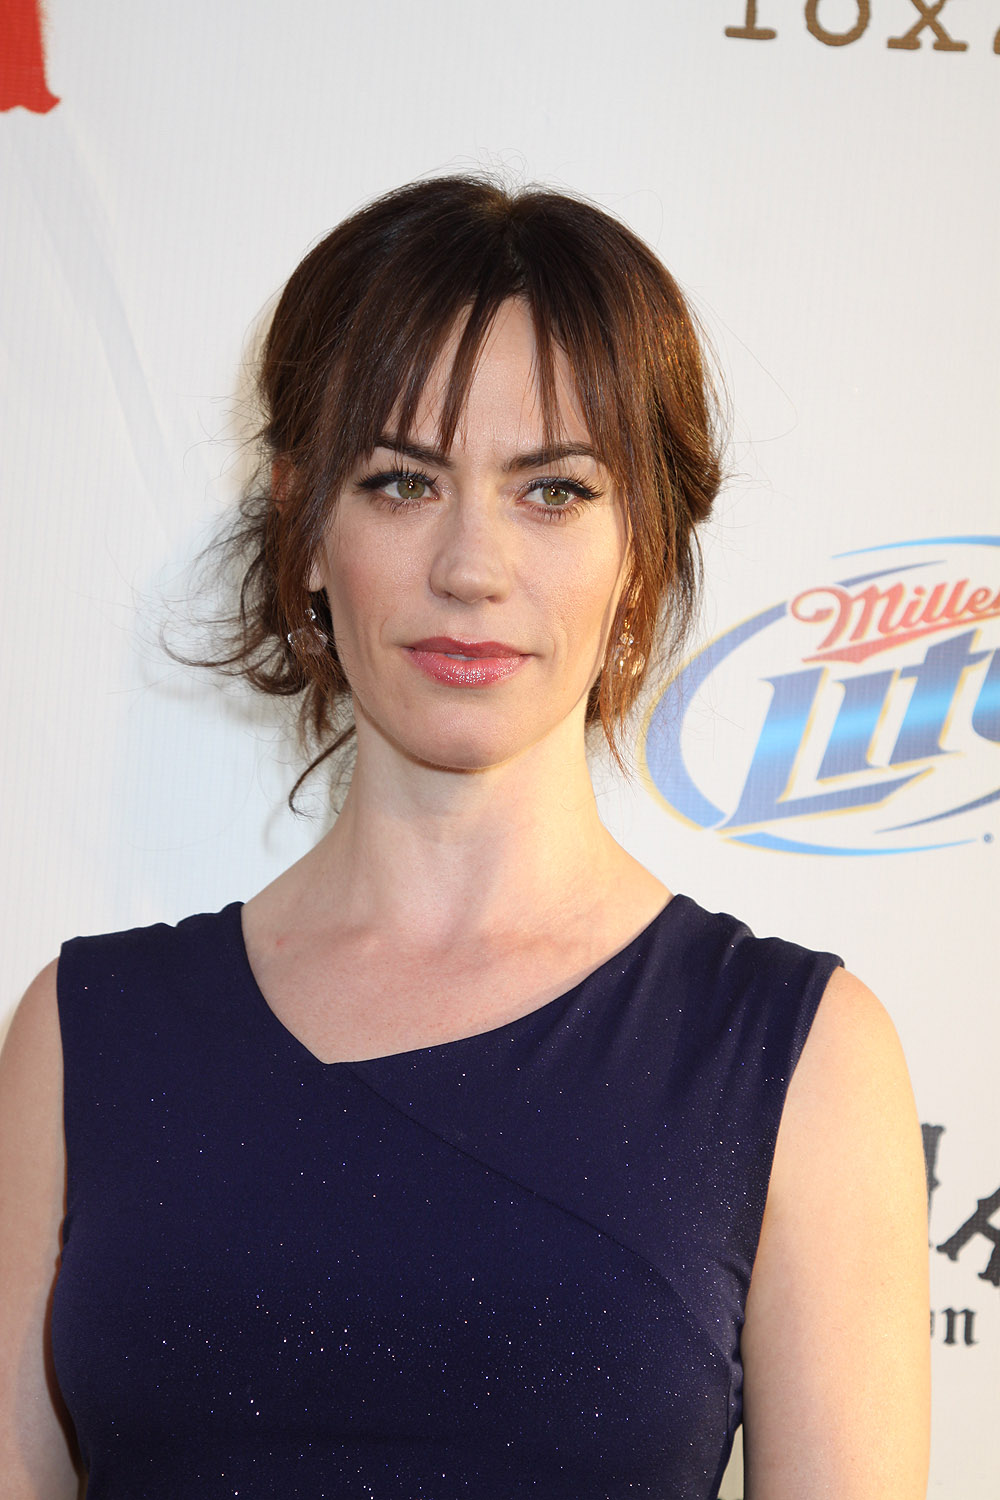 Maggie siff from sons of anarchy 4